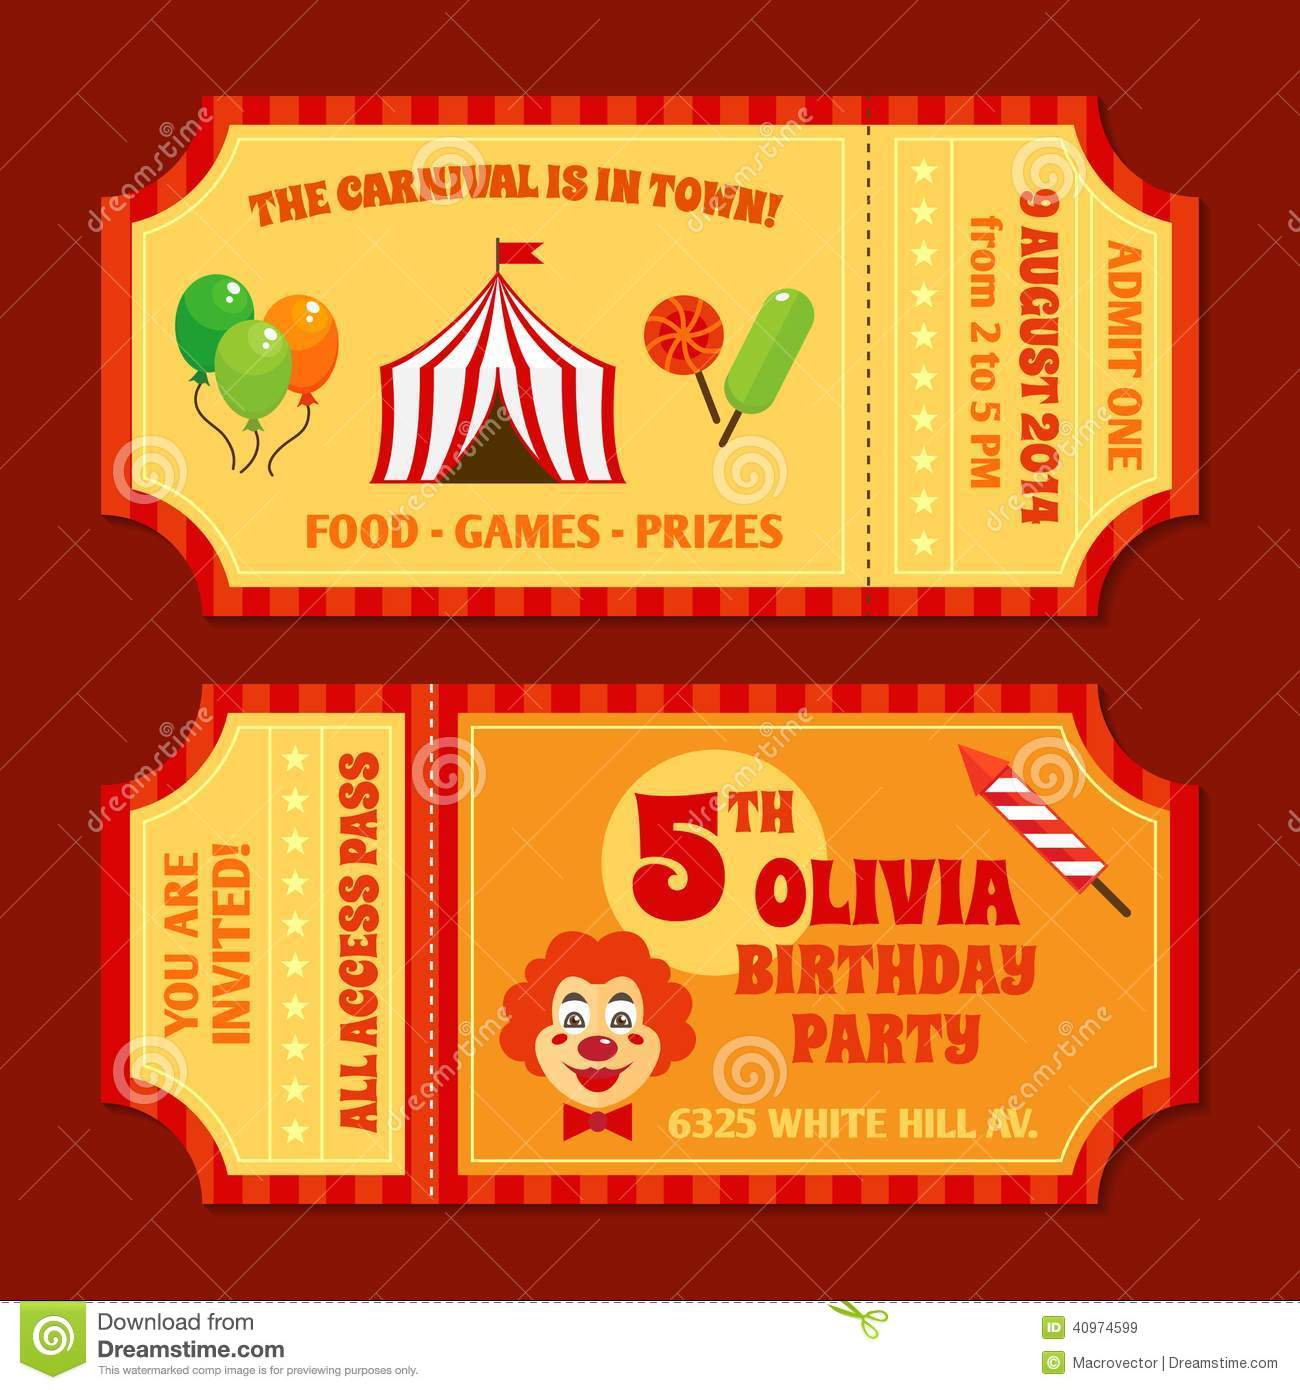 vintage circus ticket template images vintage circus ticket template